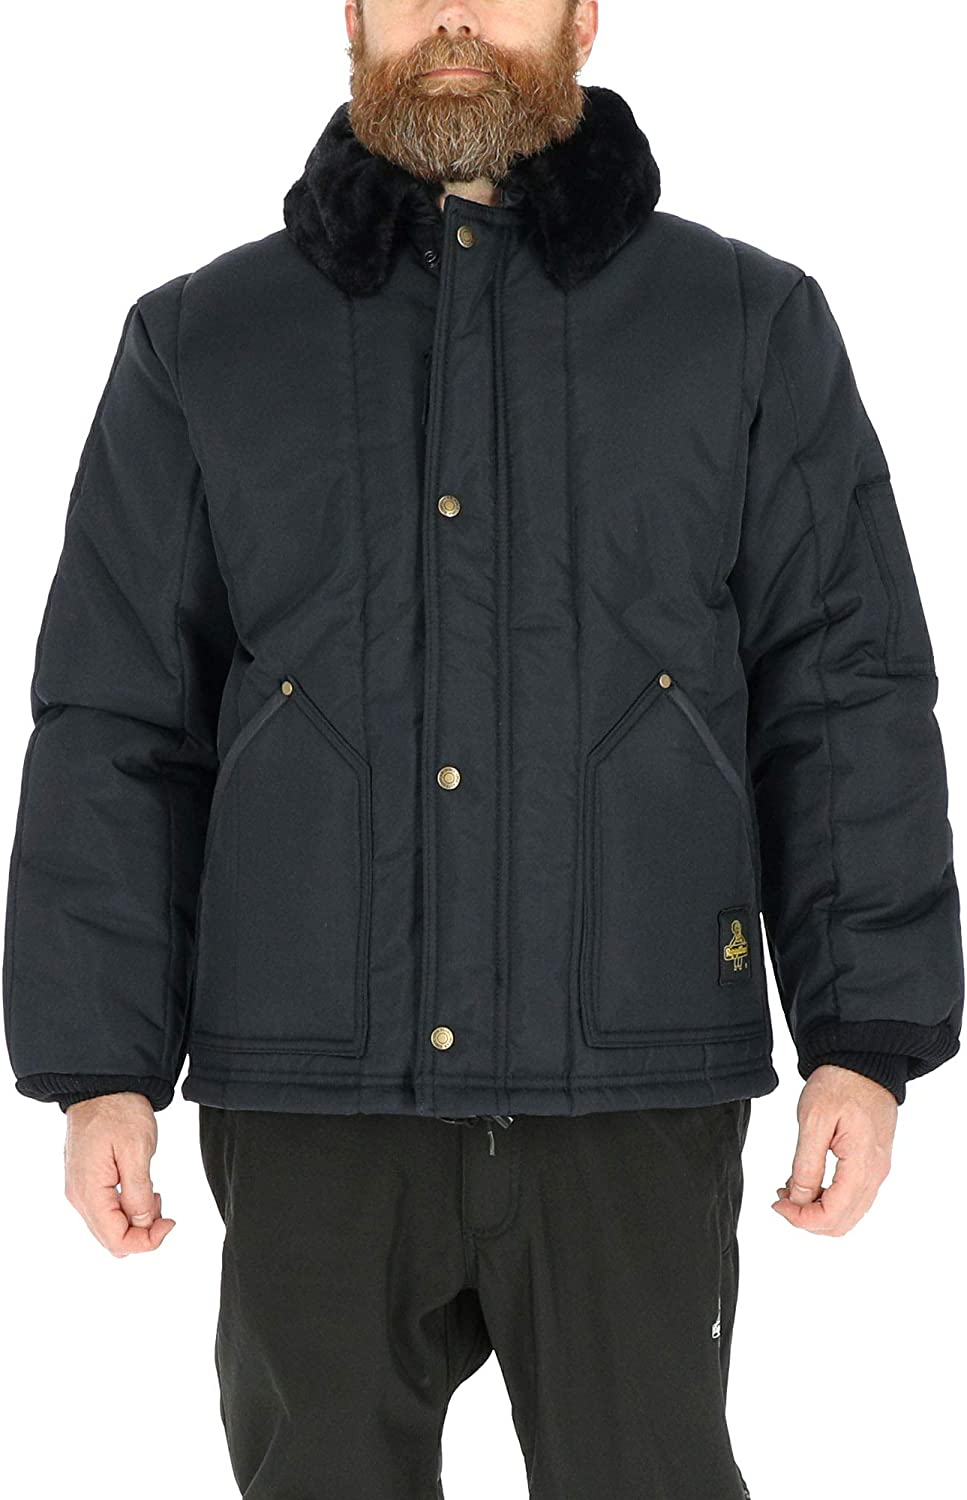 RefrigiWear Water-Resistant Insulated Iron-Tuff Arctic Jacket with Soft Fleece Collar